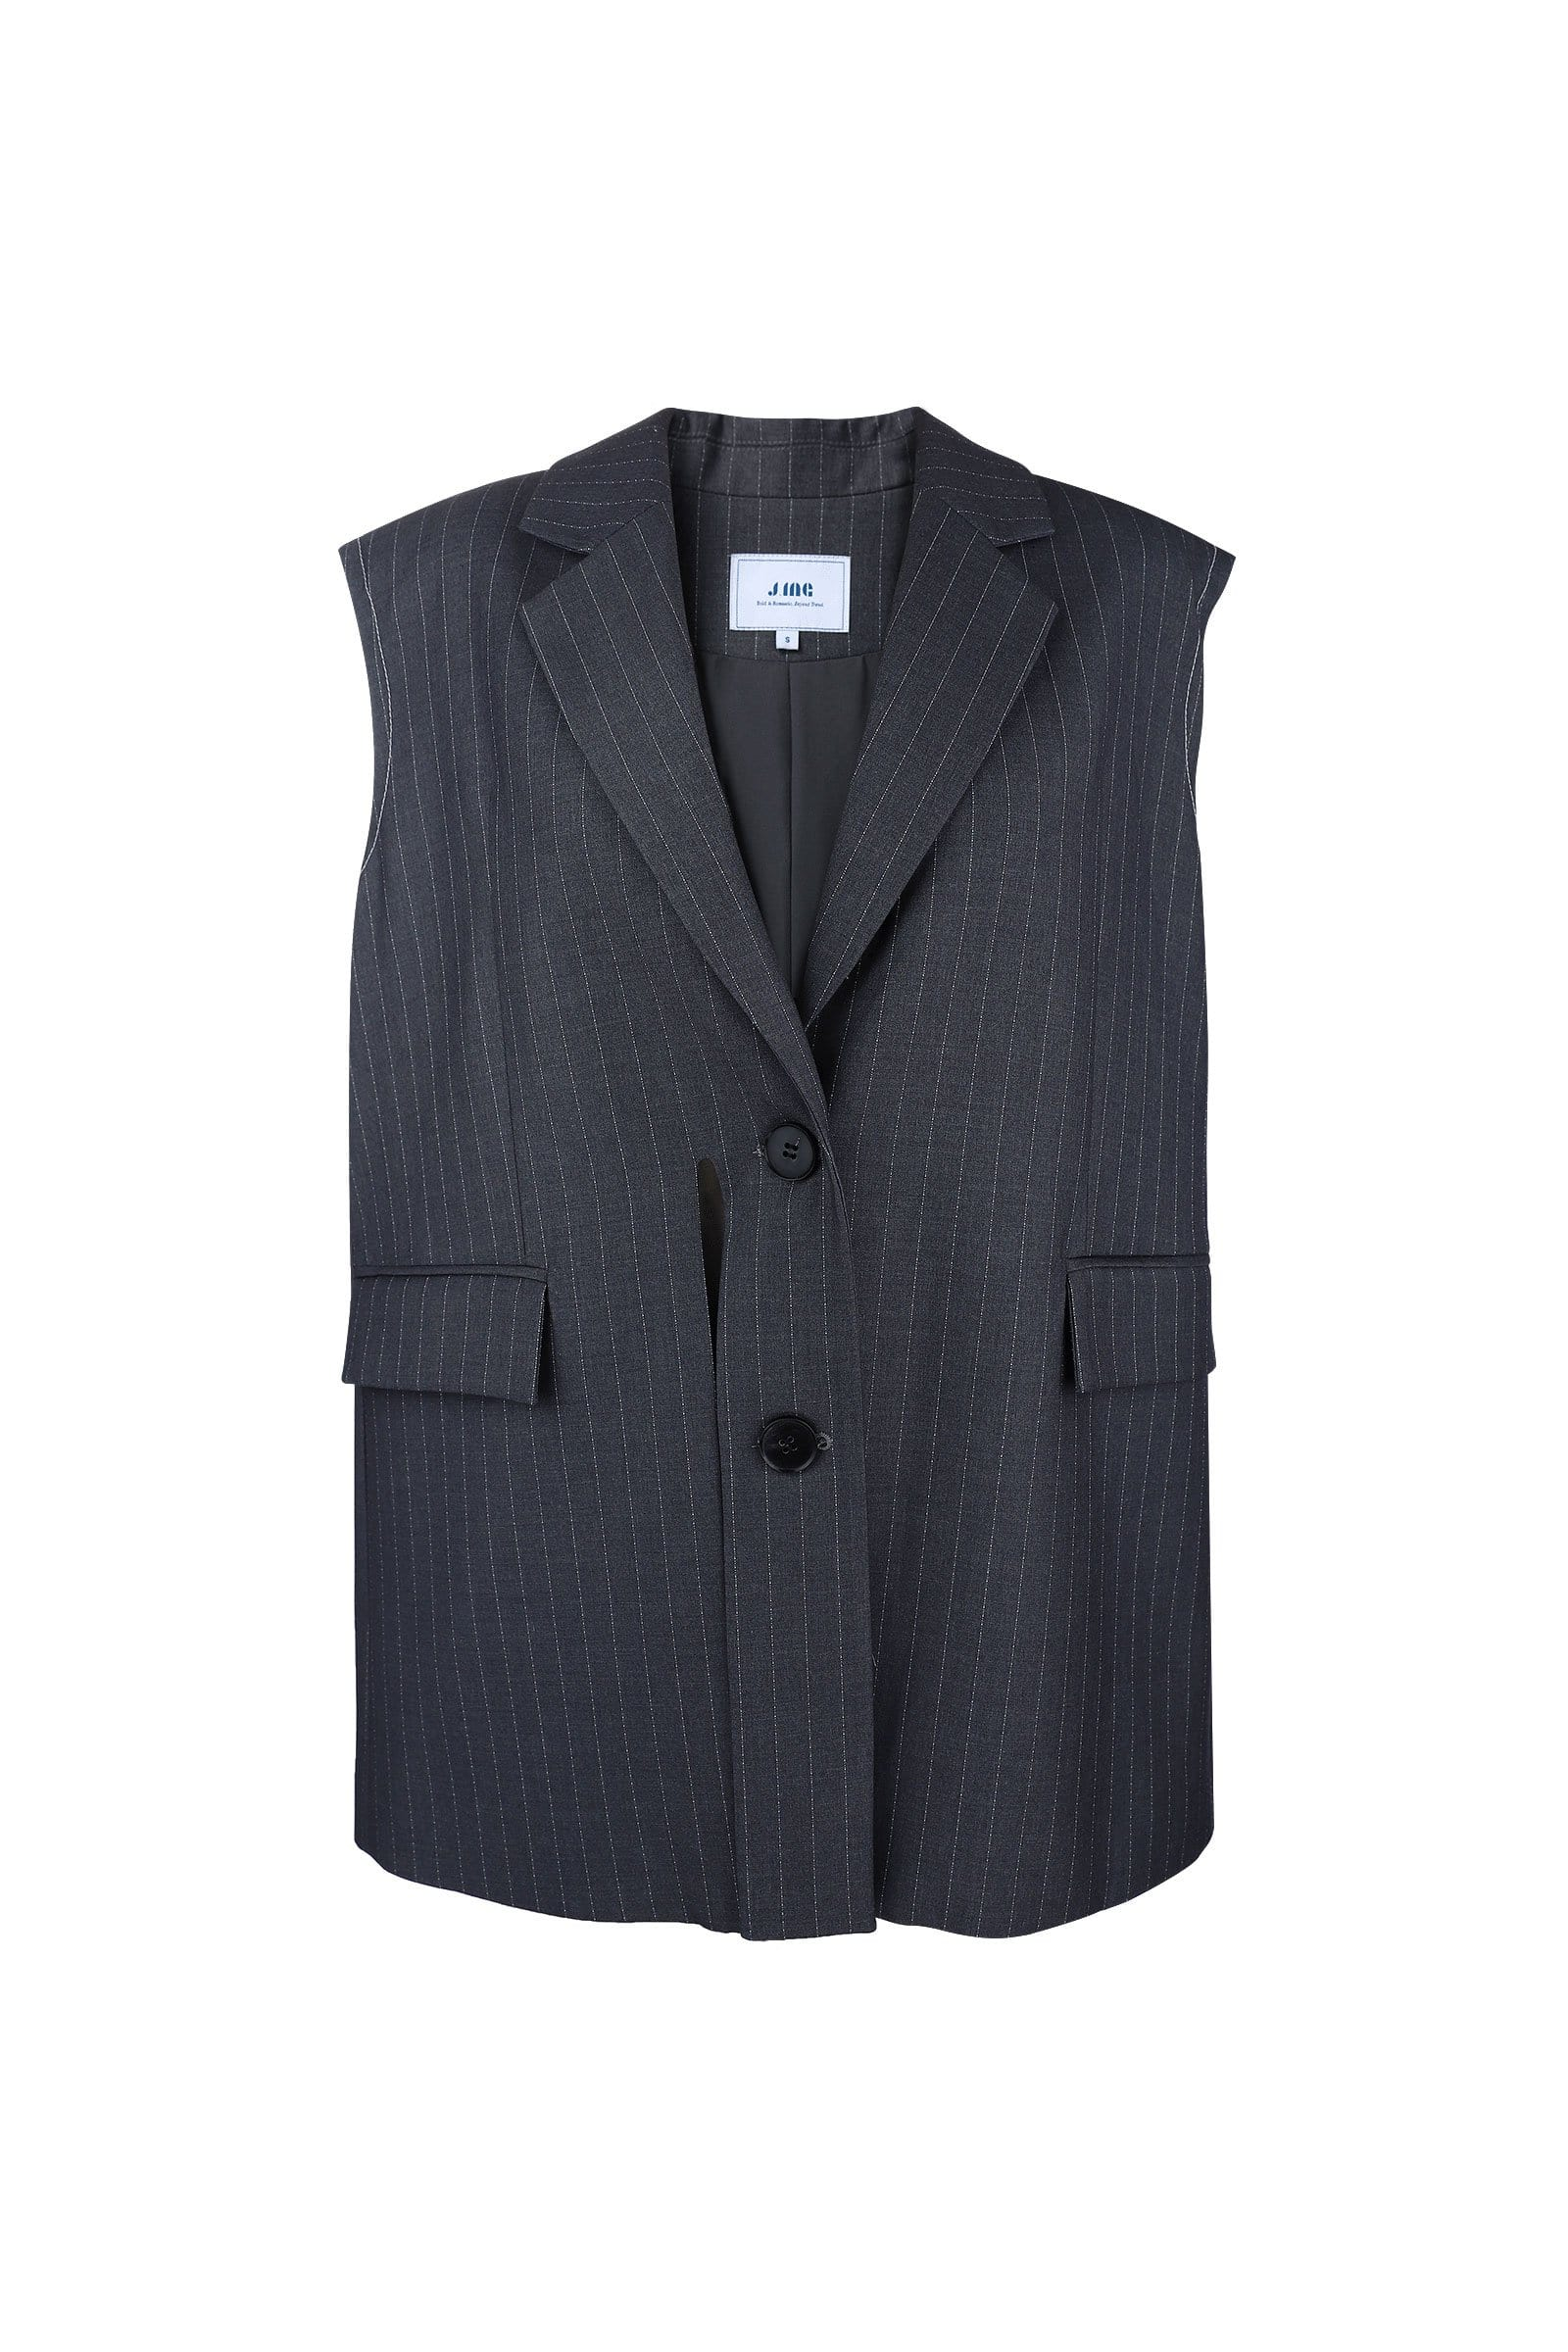 Winston Charcoal Pinstriped Vest